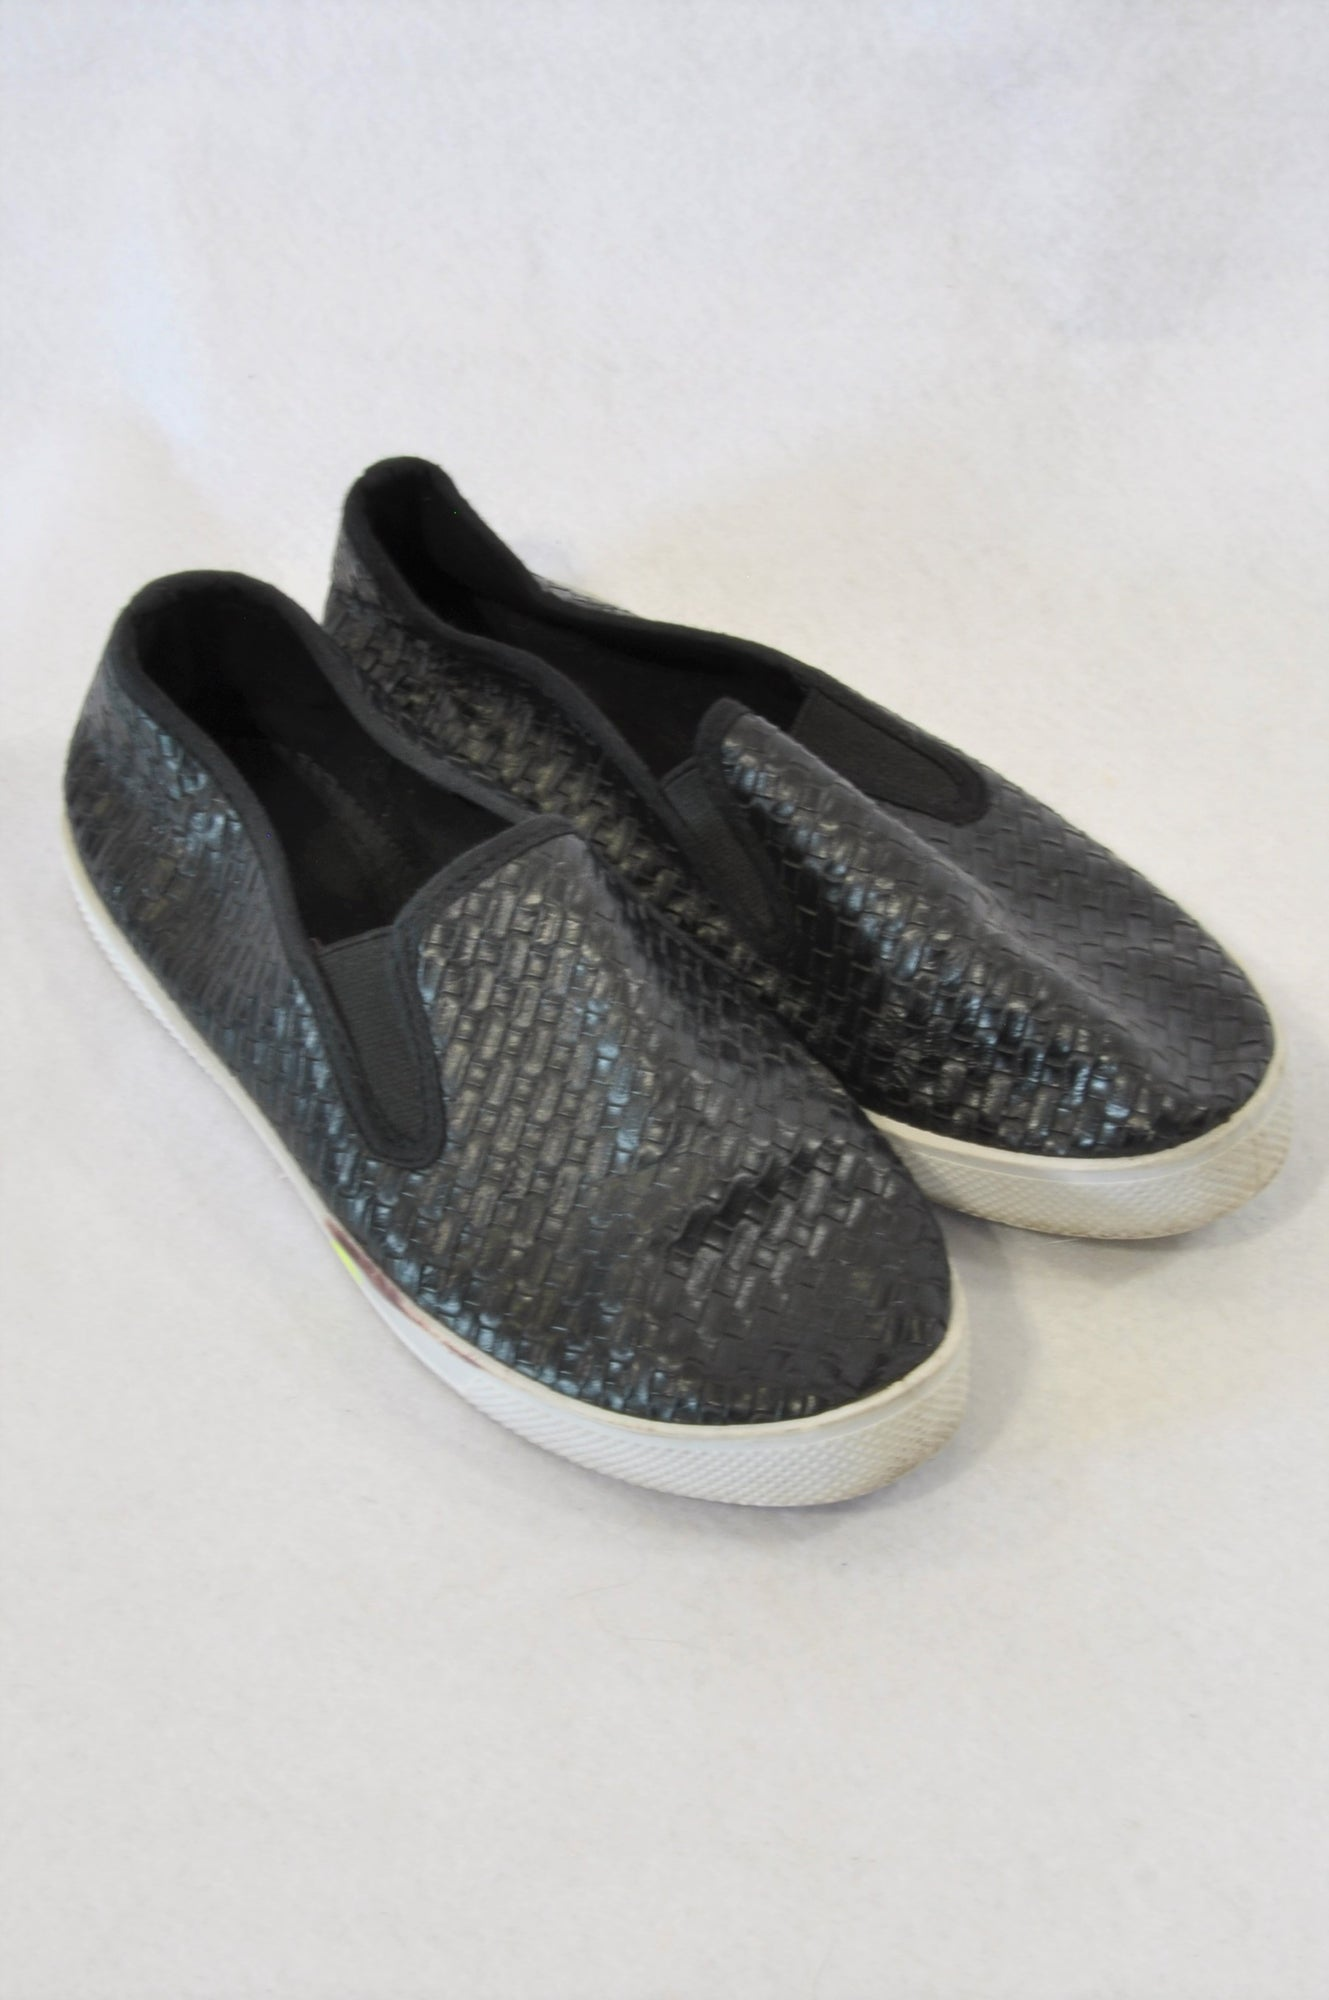 Free 2bu Black Woven Style Slip On Shoes Women Size 4